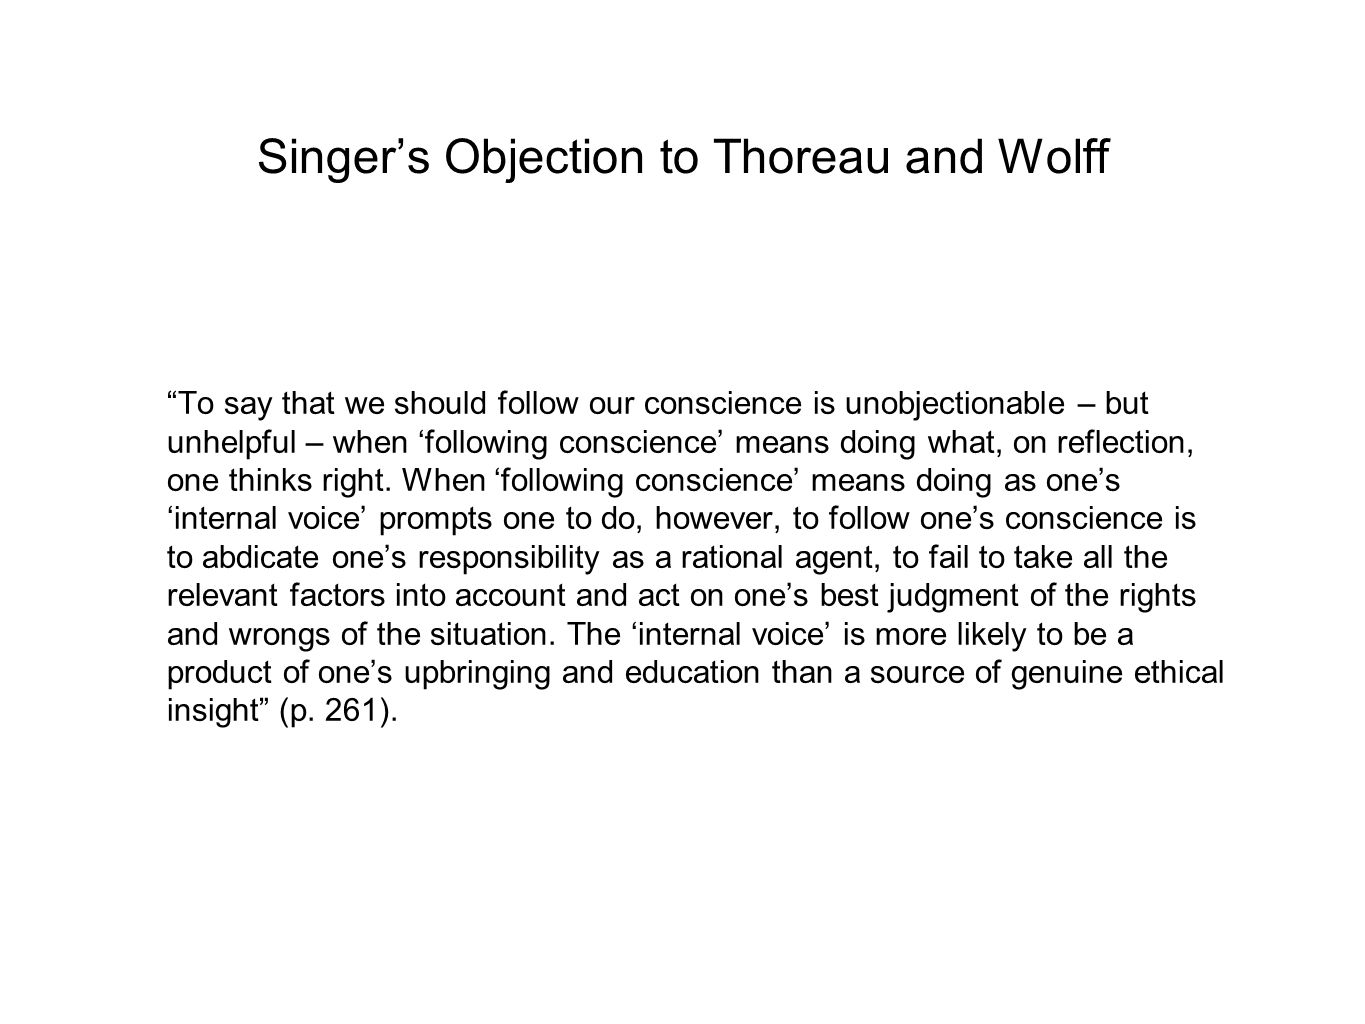 Singer's Objection to Thoreau and Wolff